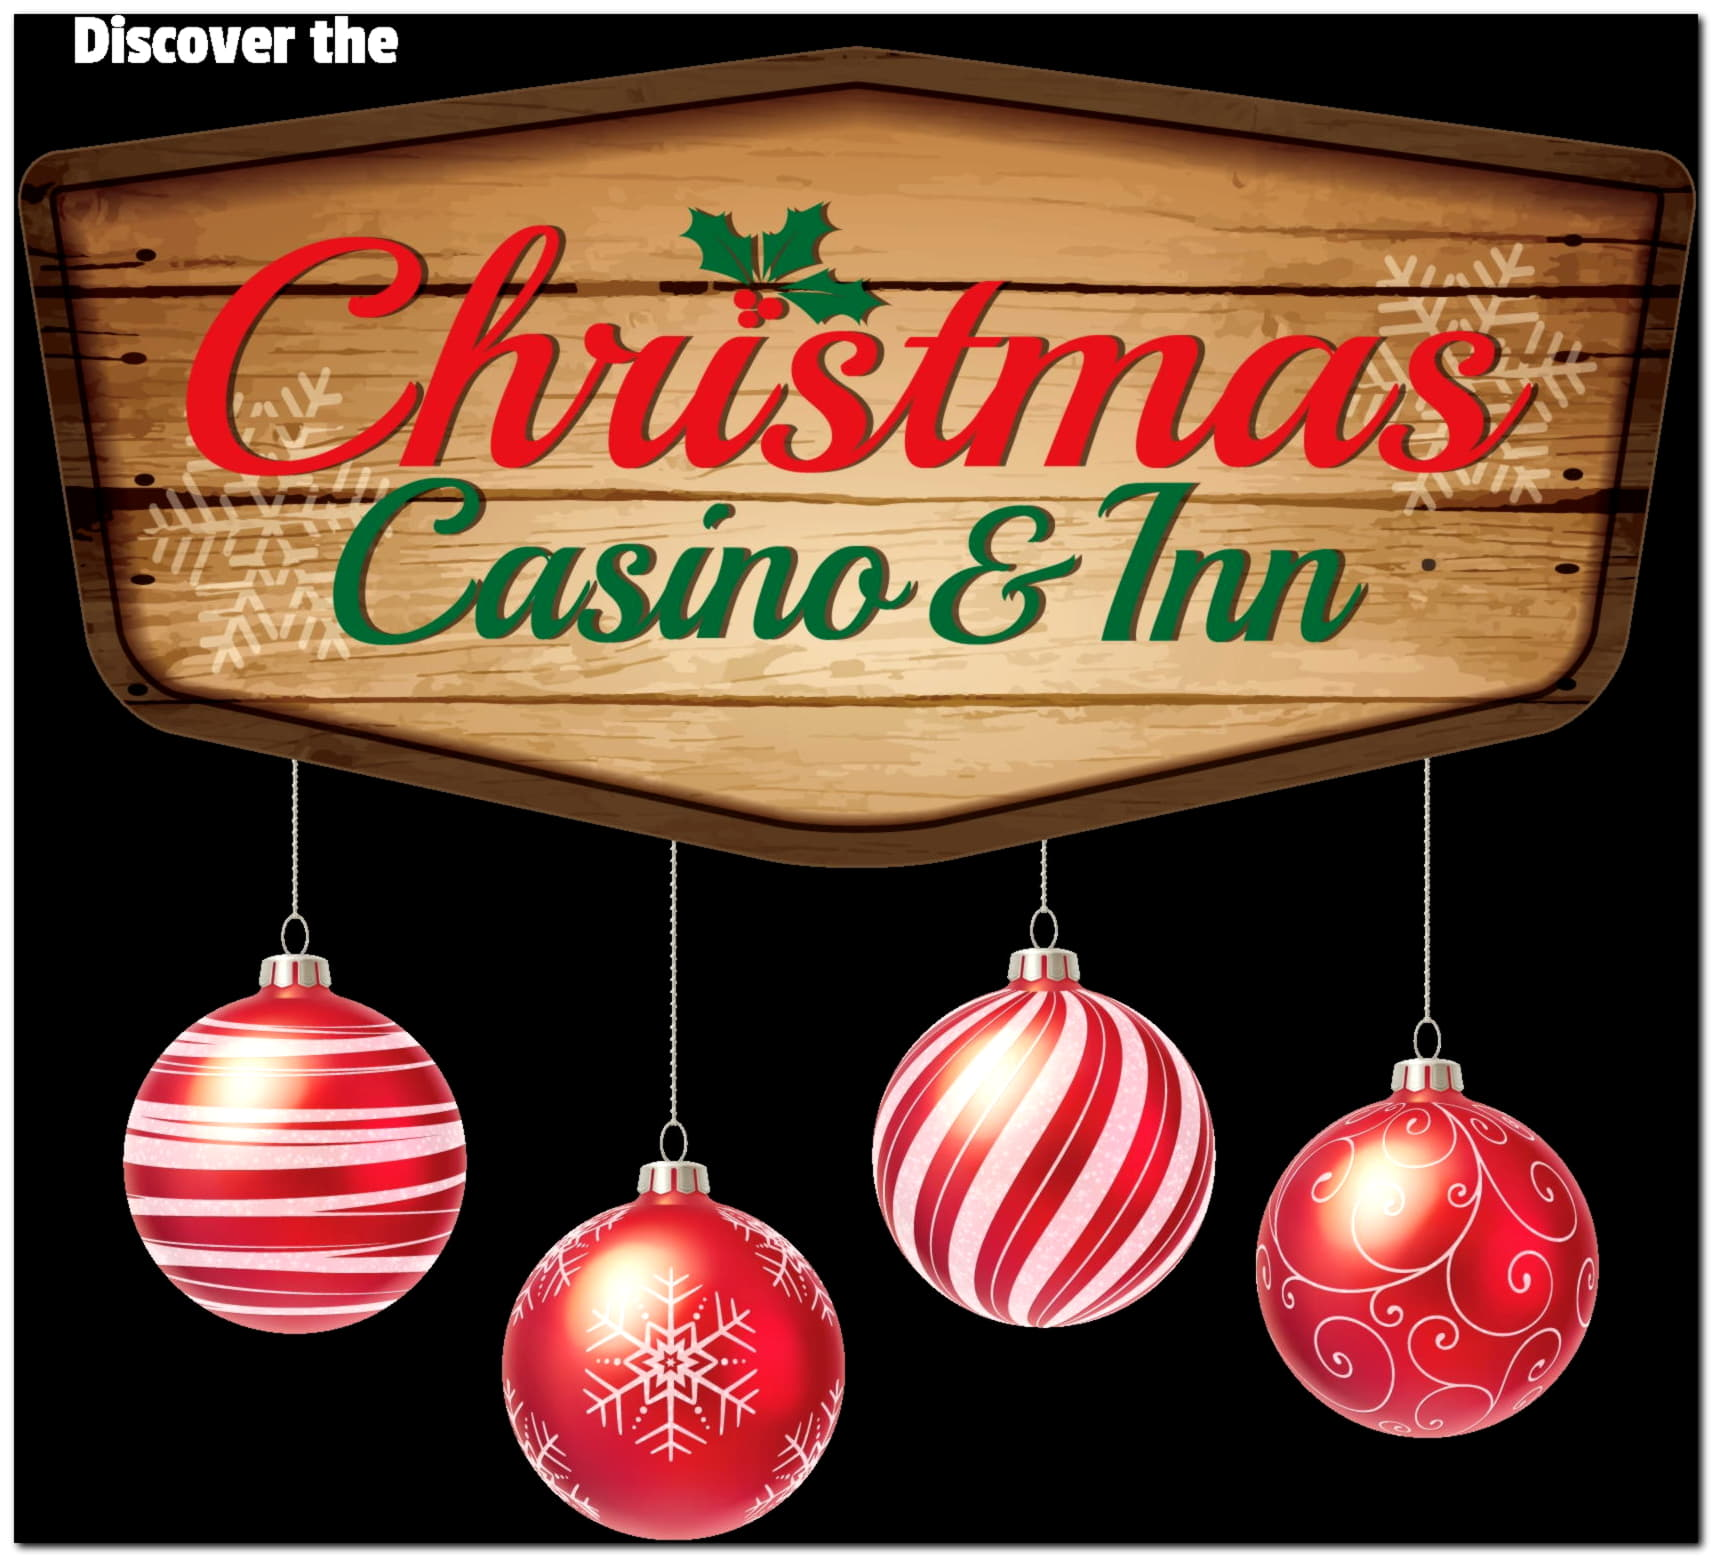 Eur 320 Daily freeroll slot tournament at Party Casino